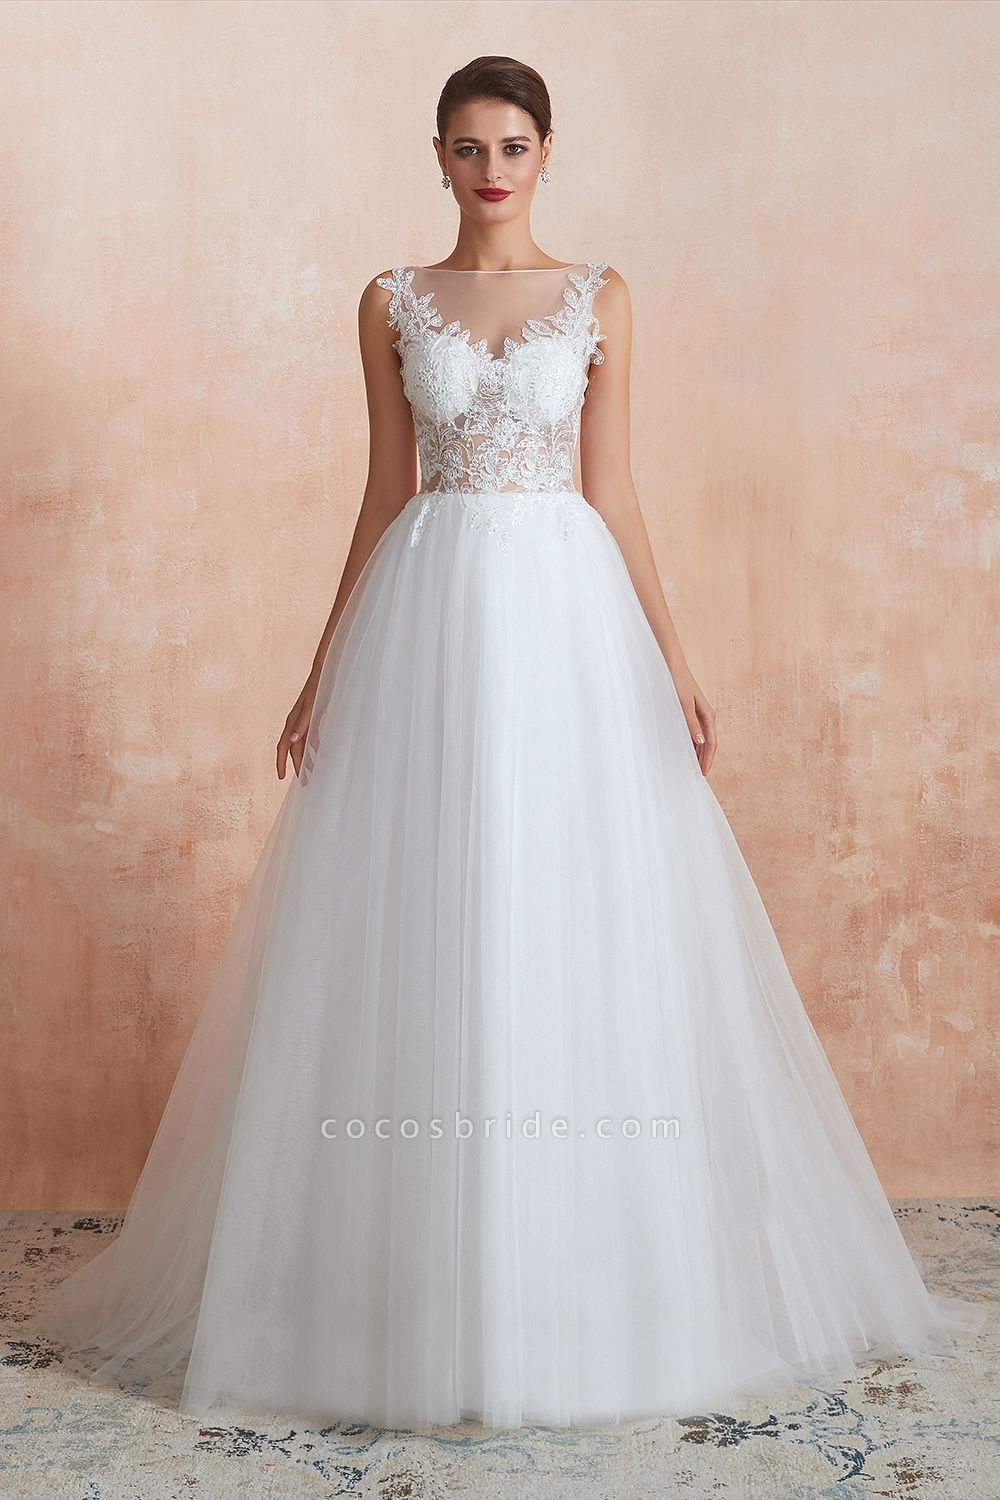 https://www.cocosbride.com/graceful-sequins-tulle-a-line-wedding-dress-g502?cate_2=45